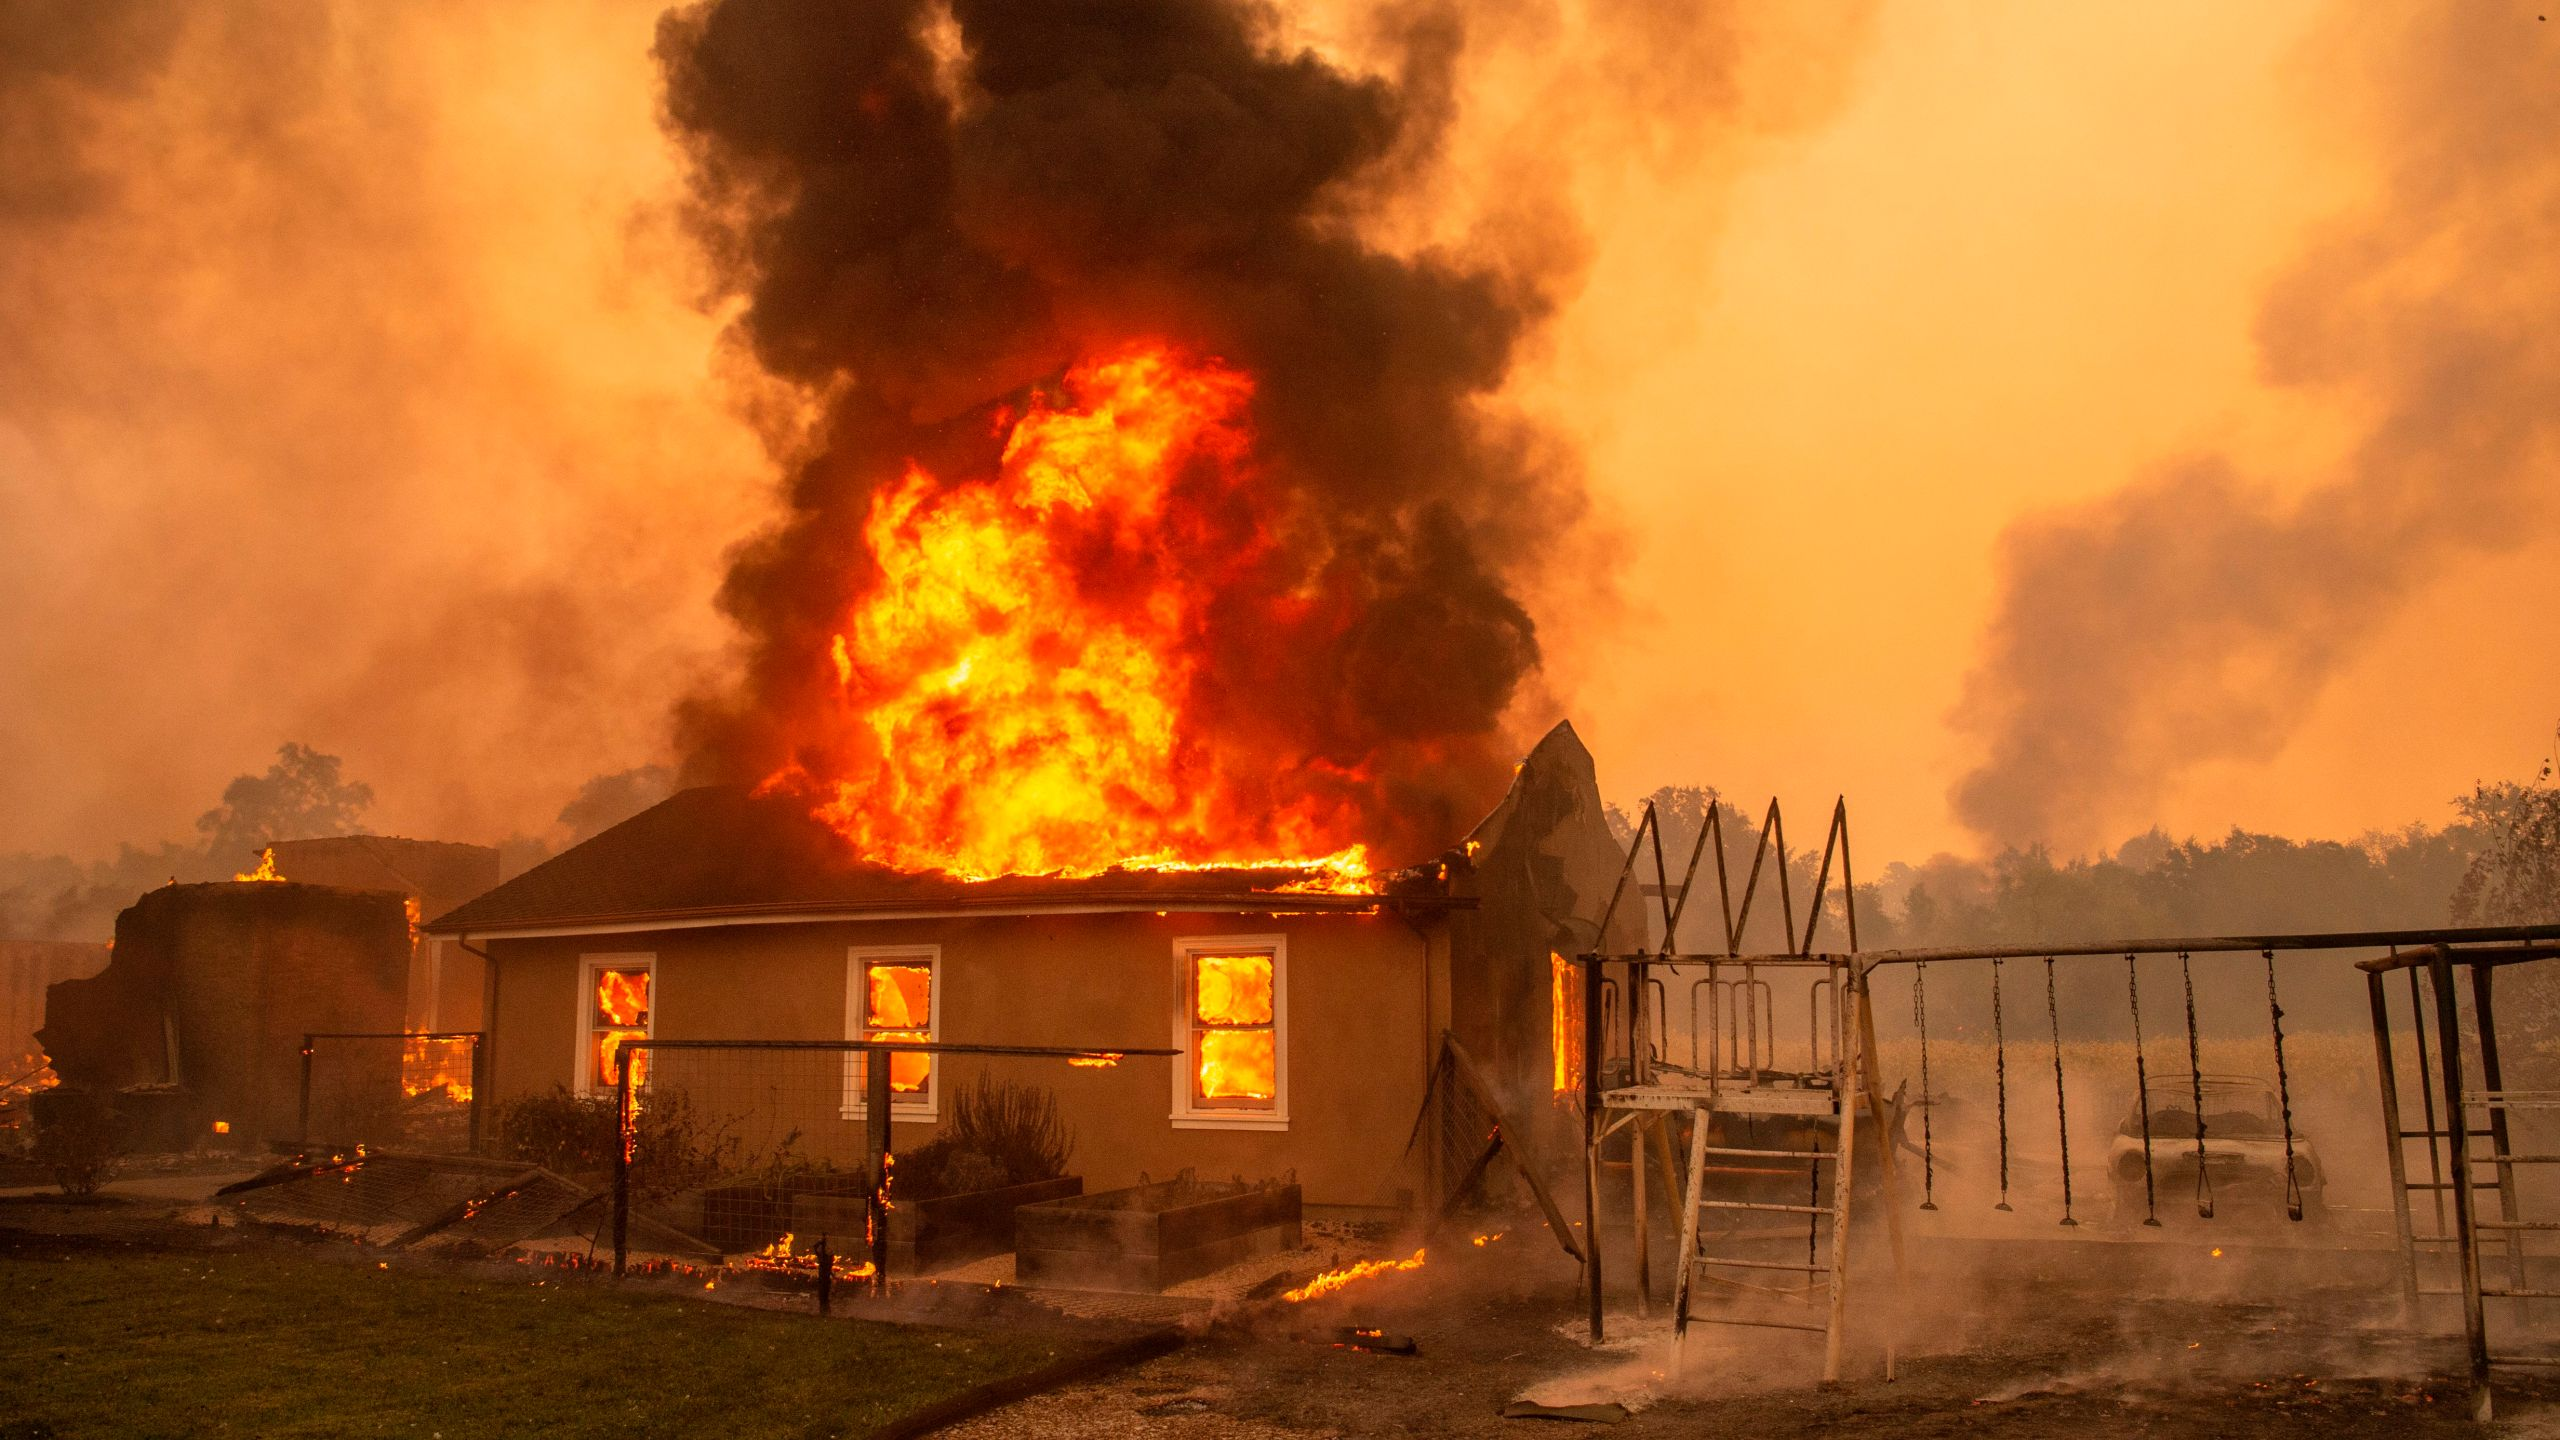 A home burns at a vineyard during the Kincade fire near Geyserville, California on Oct. 24, 2019.(Credit: Josh Edelson/AFP via Getty Images)